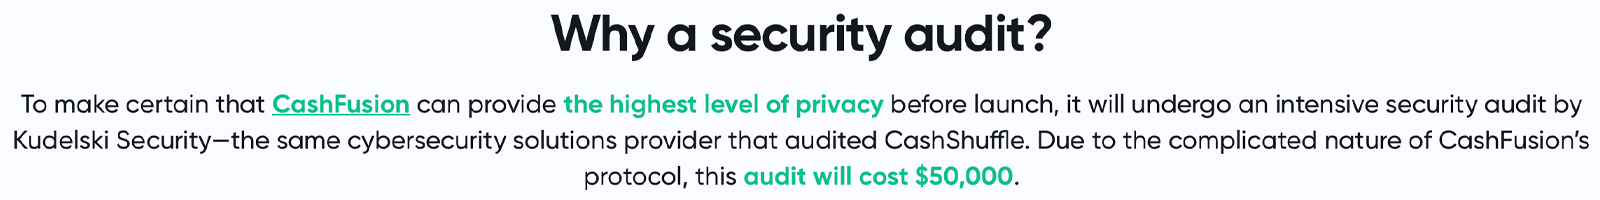 Raising $100K for Cashfusion's Security Audit, Bitcoin.com Matches Donations to Improve BCH Privacy